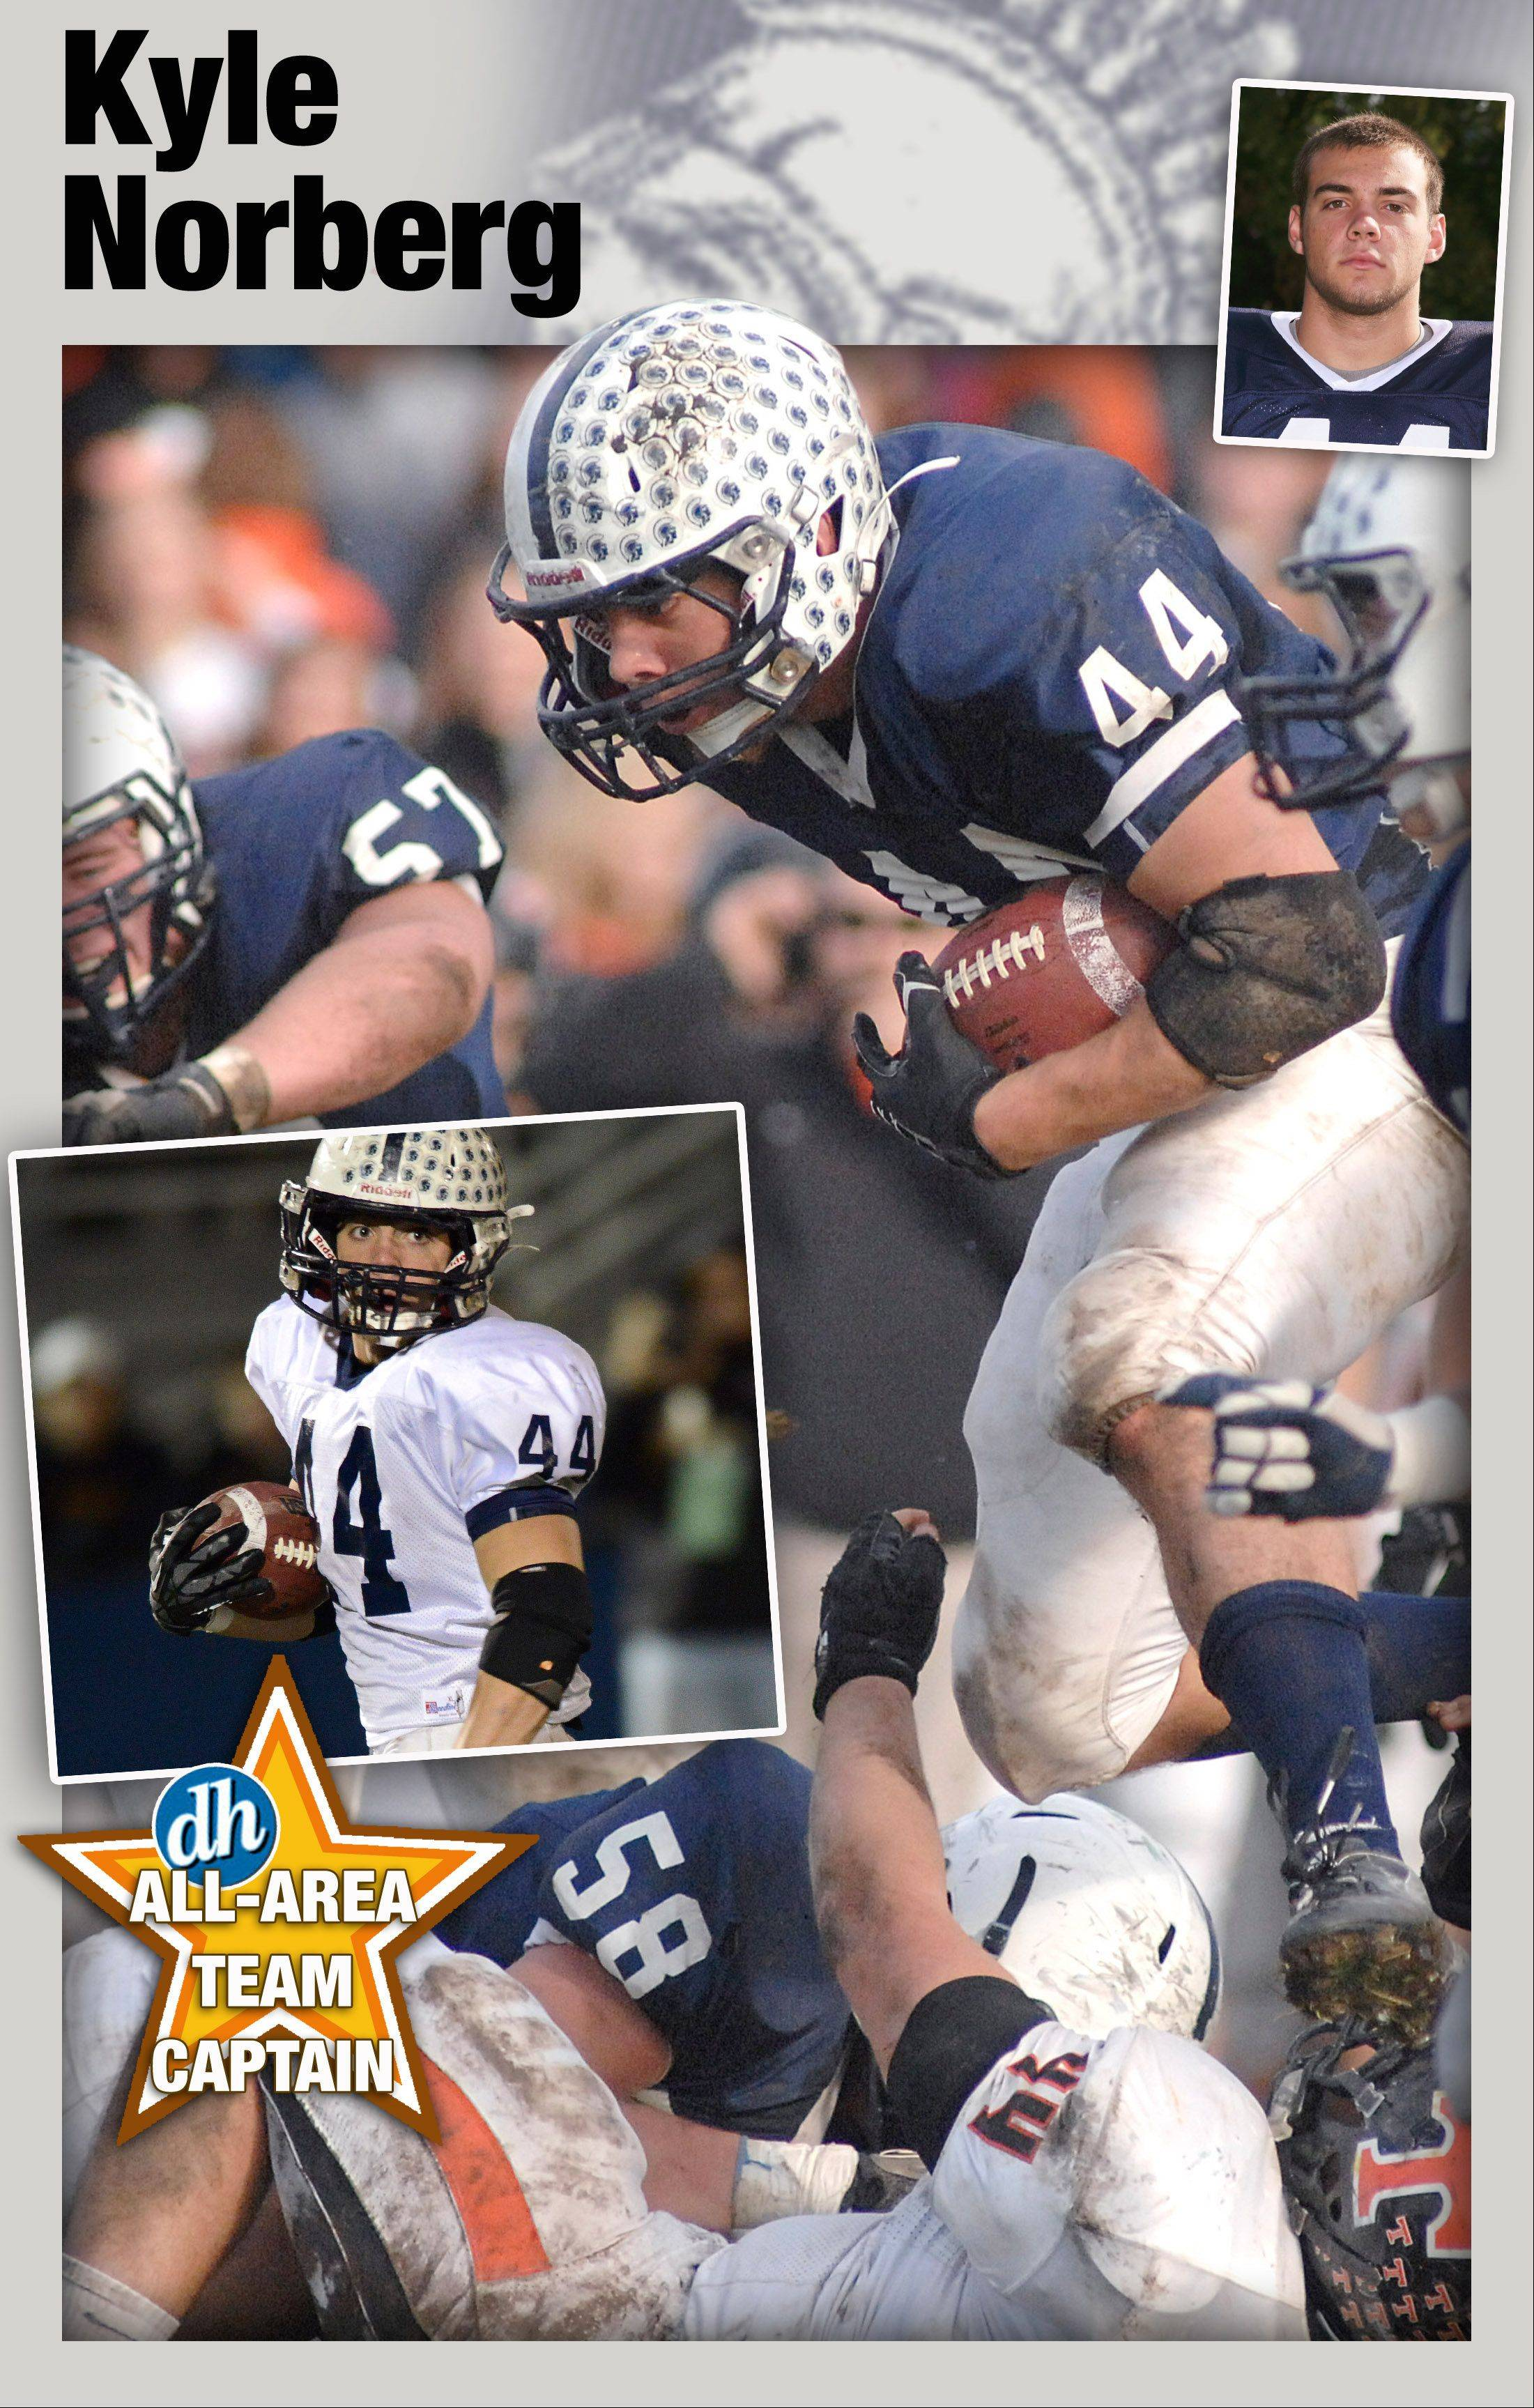 The Daily Herald football all-area team captain for the Fox Valley in 2012 is Cary-Grove's Kyle Norberg.